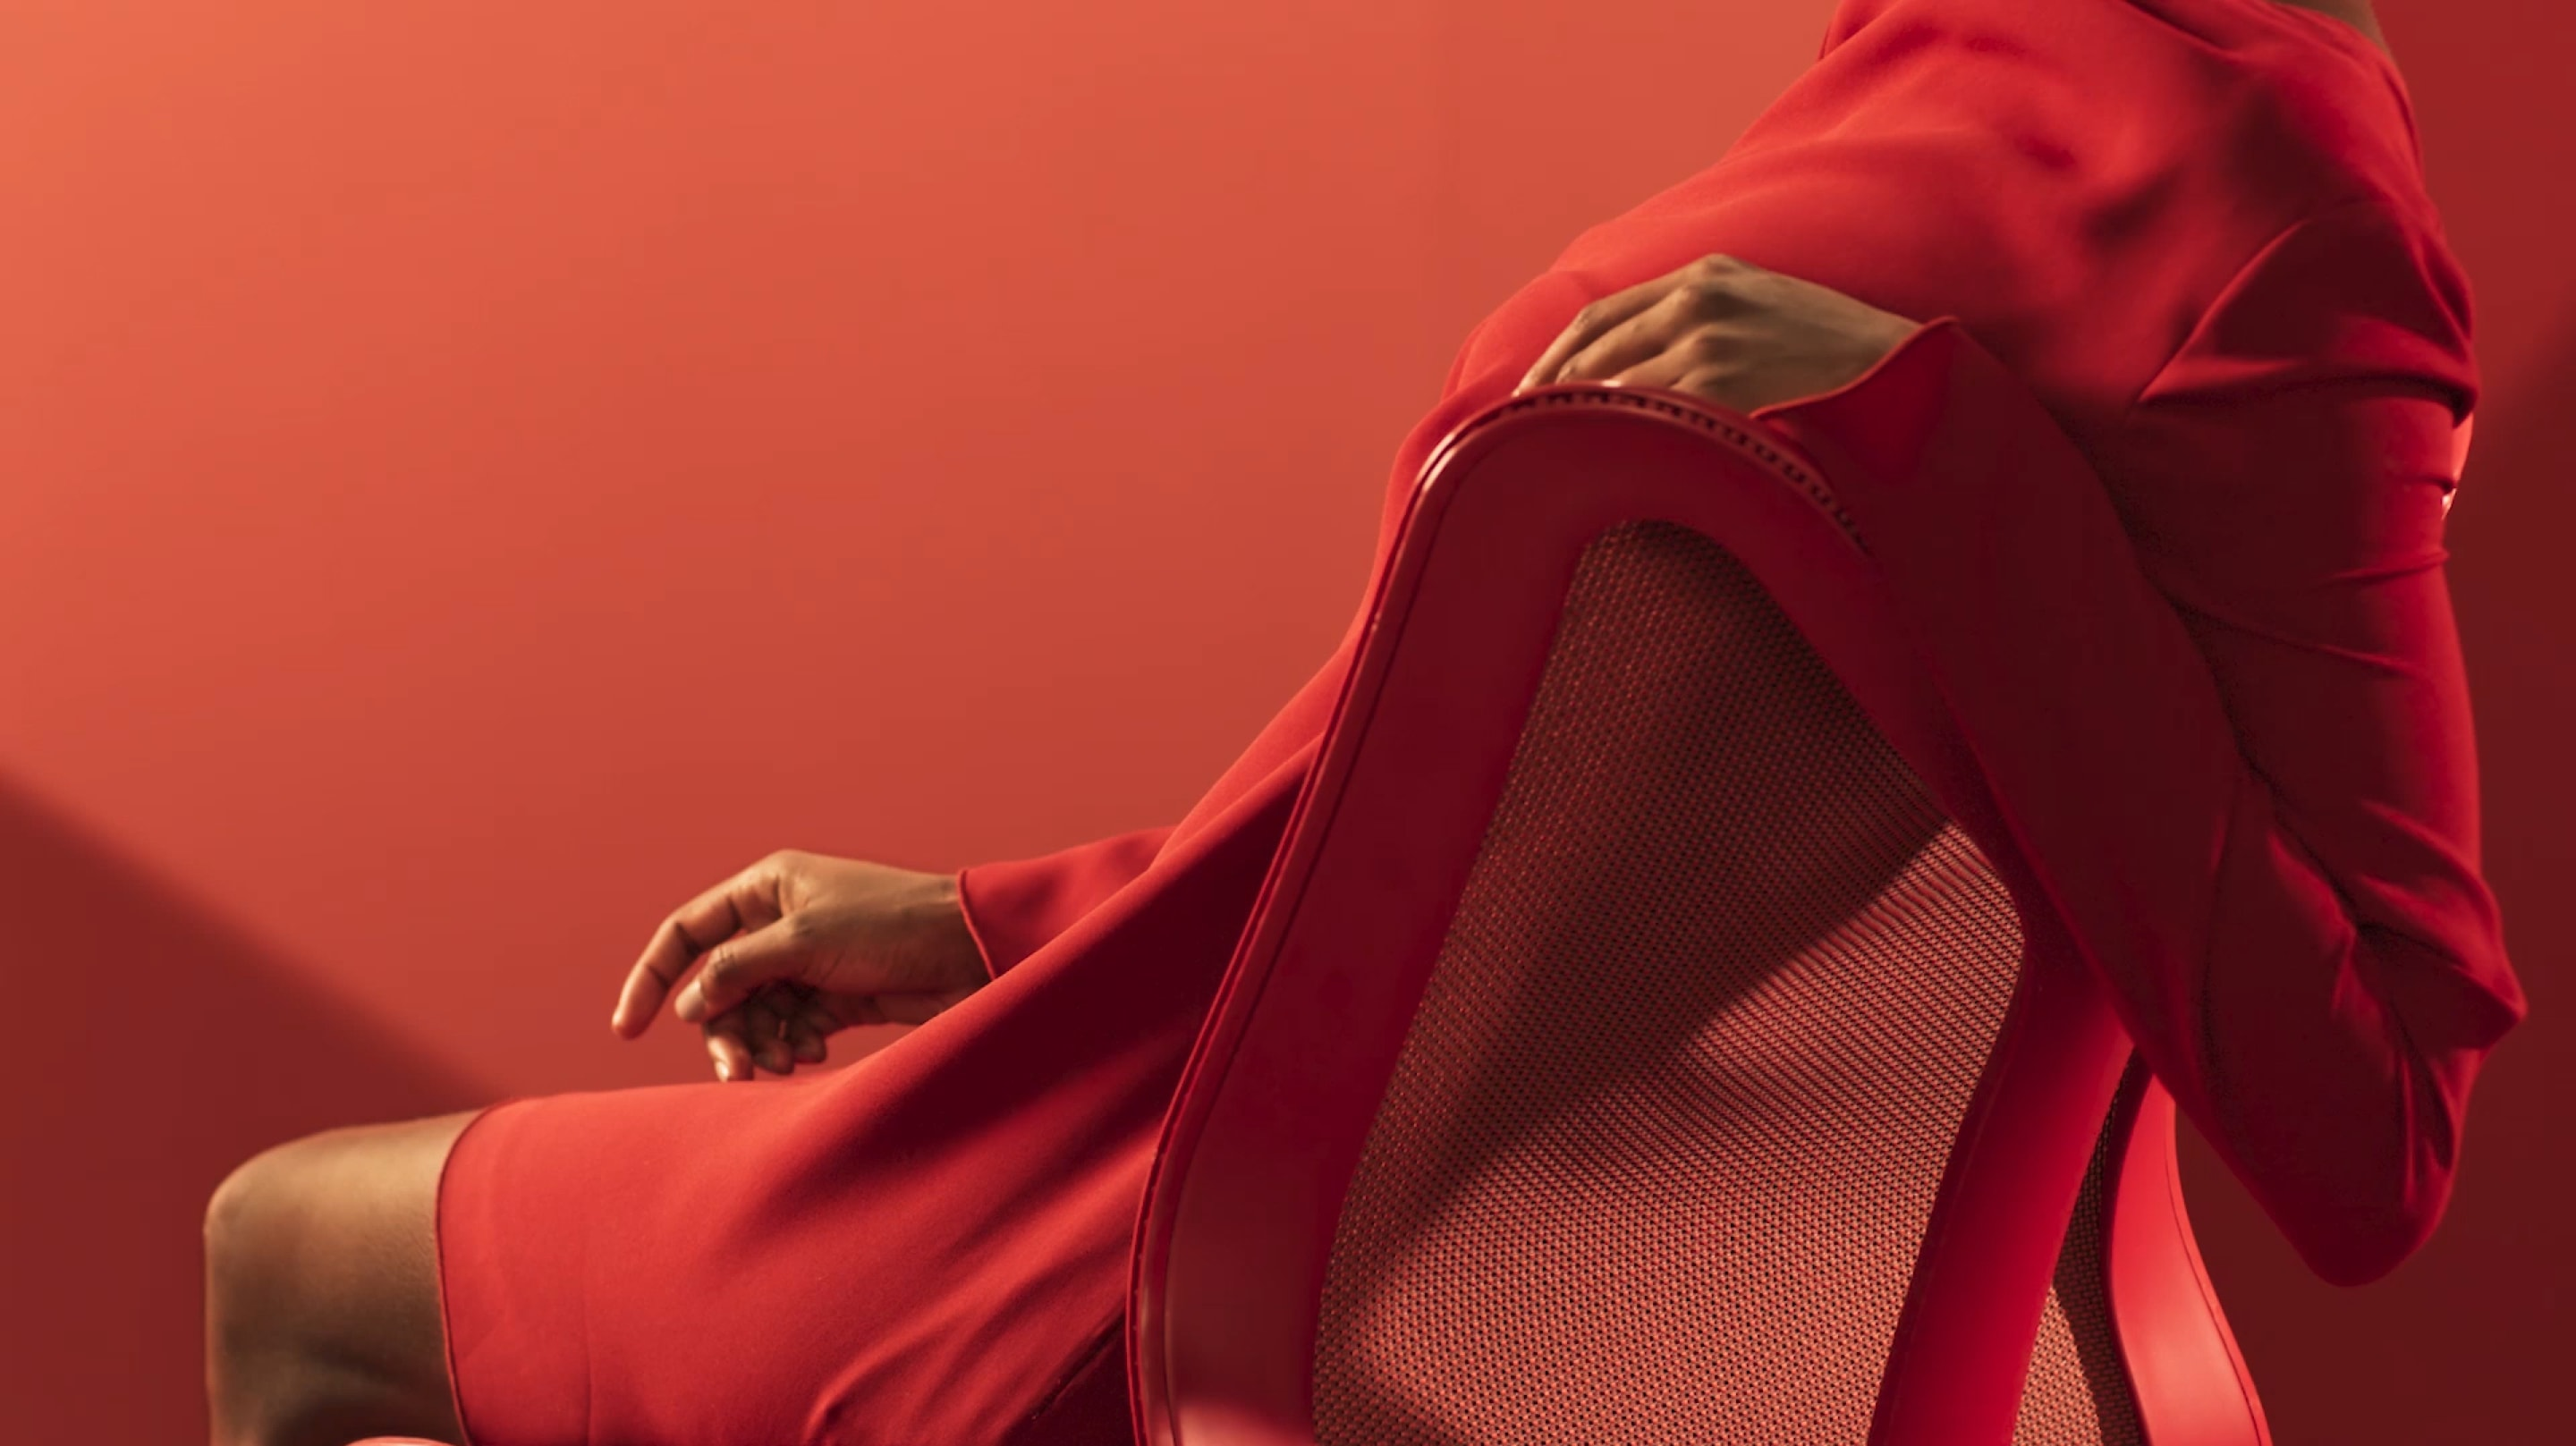 A woman in a red dress reclines with her arm over the backrest of a Canyon red Cosm Chair.